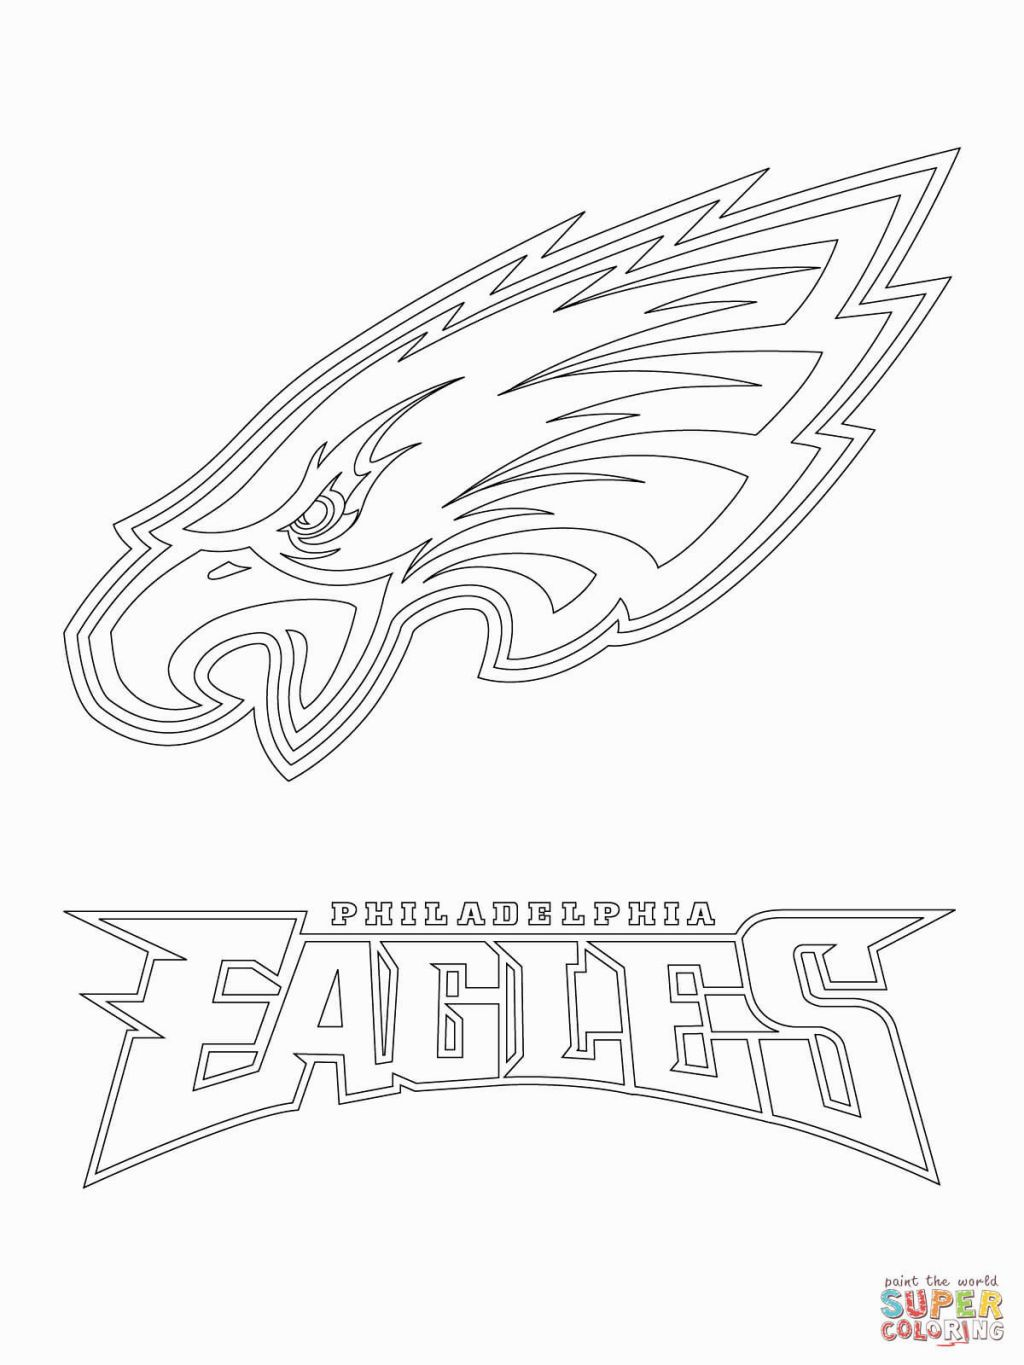 Philadelphia Eagles Coloring Pages | Coloring Pages | Pinterest ...